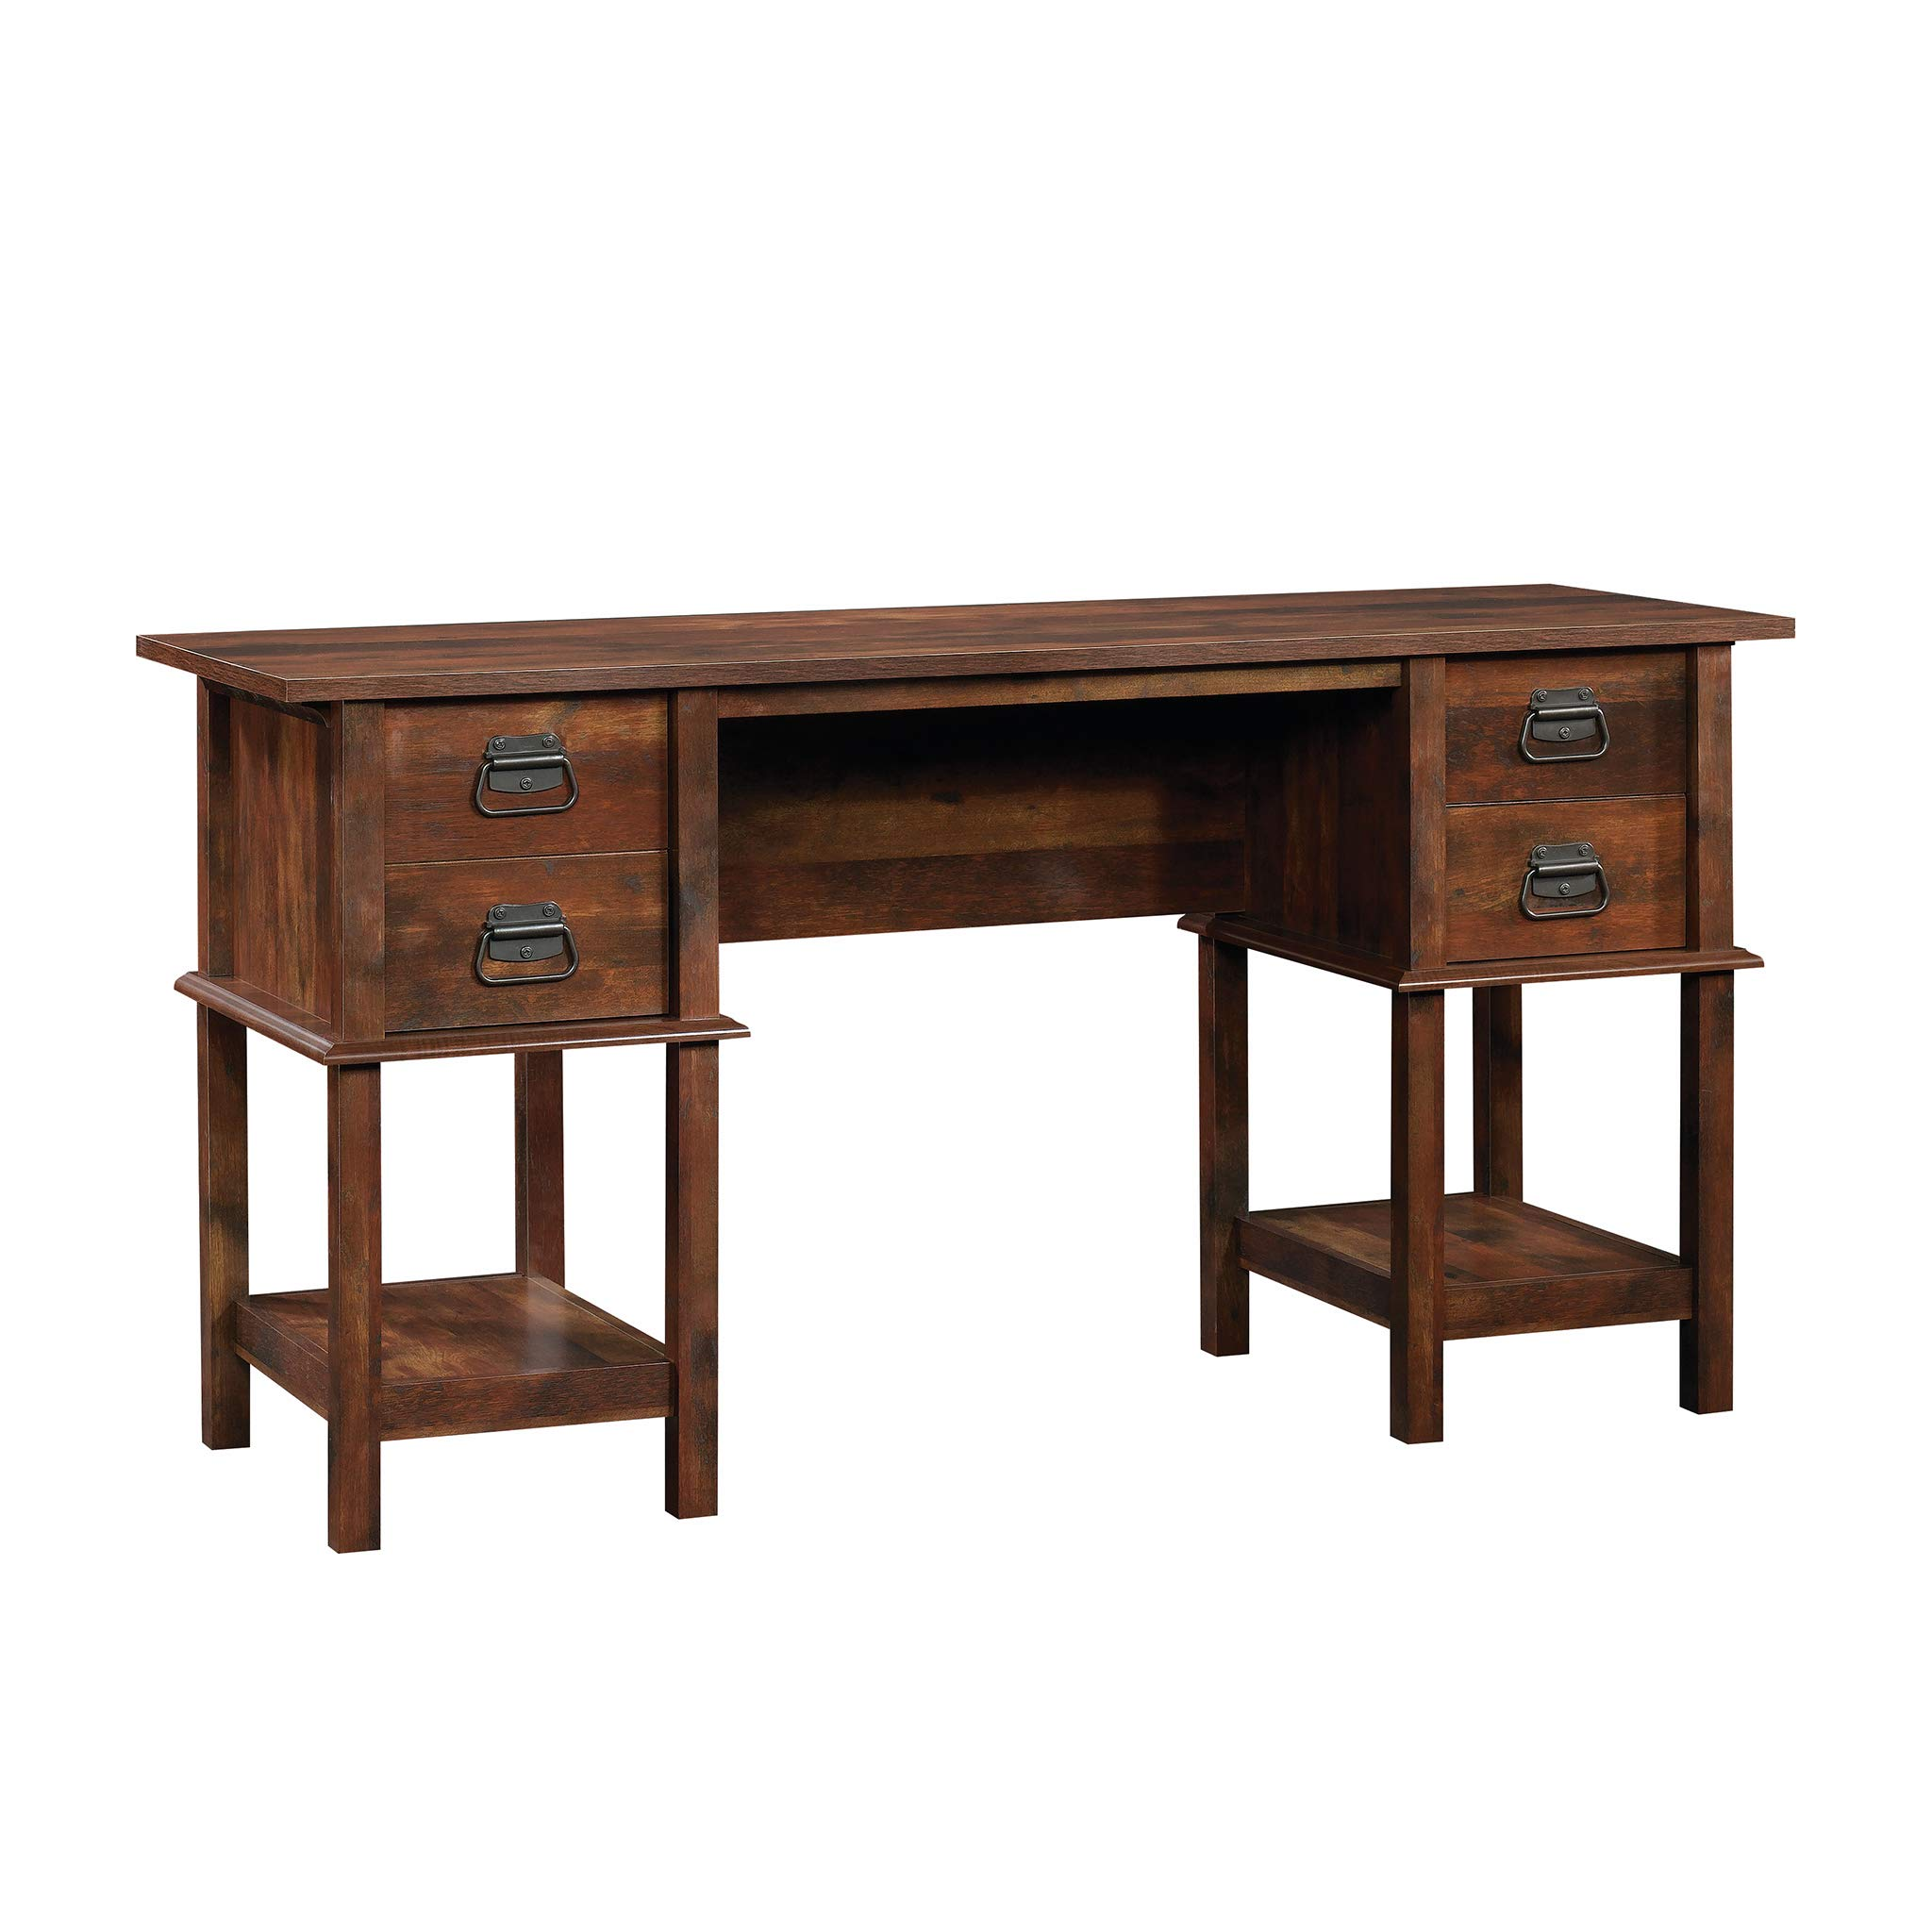 Sauder Viabella Home Office Furniture Transitional Curado Cherry